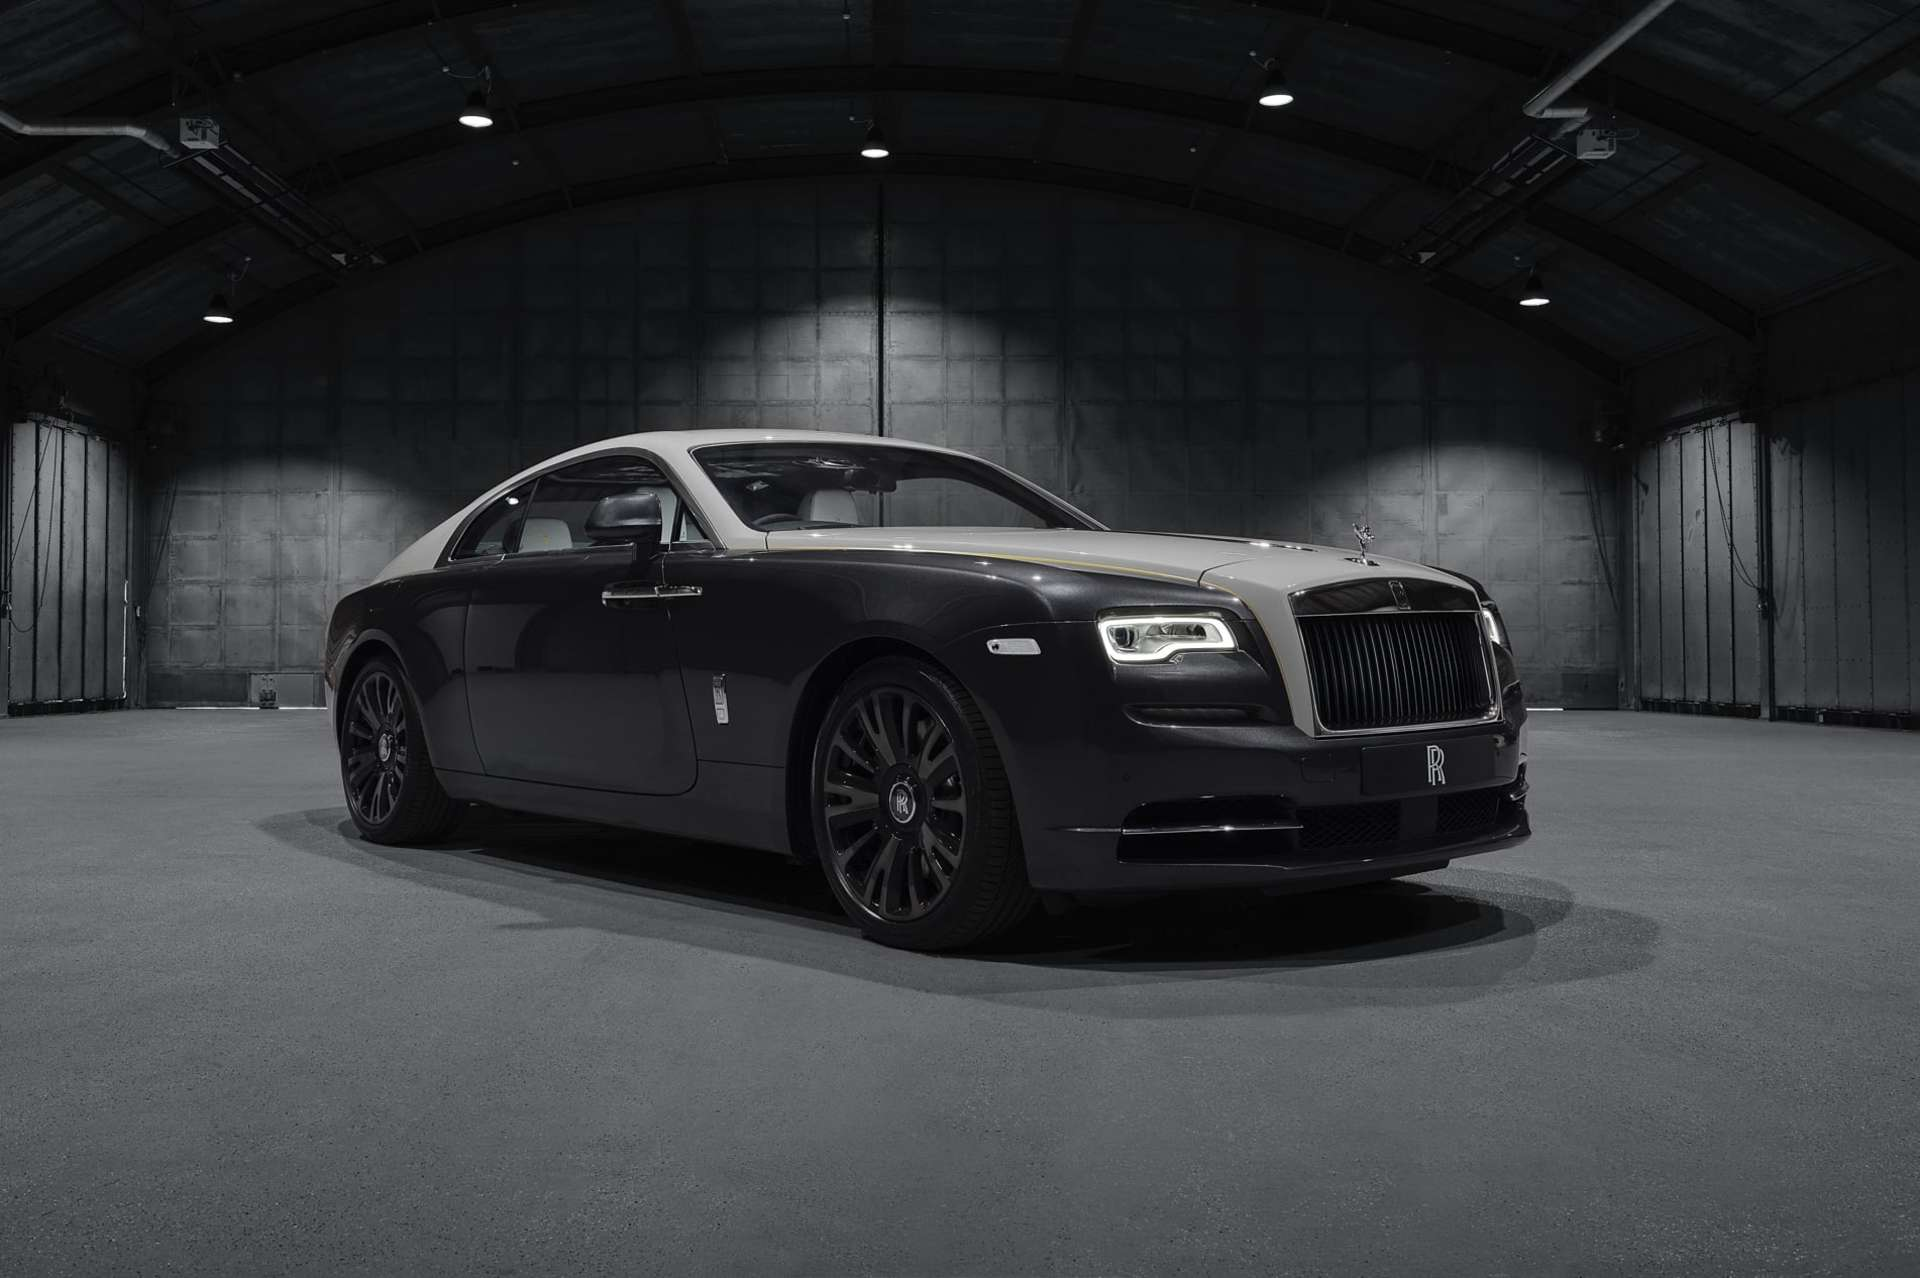 A side view of a Bespoke Rolls-Royce Wraith motor car